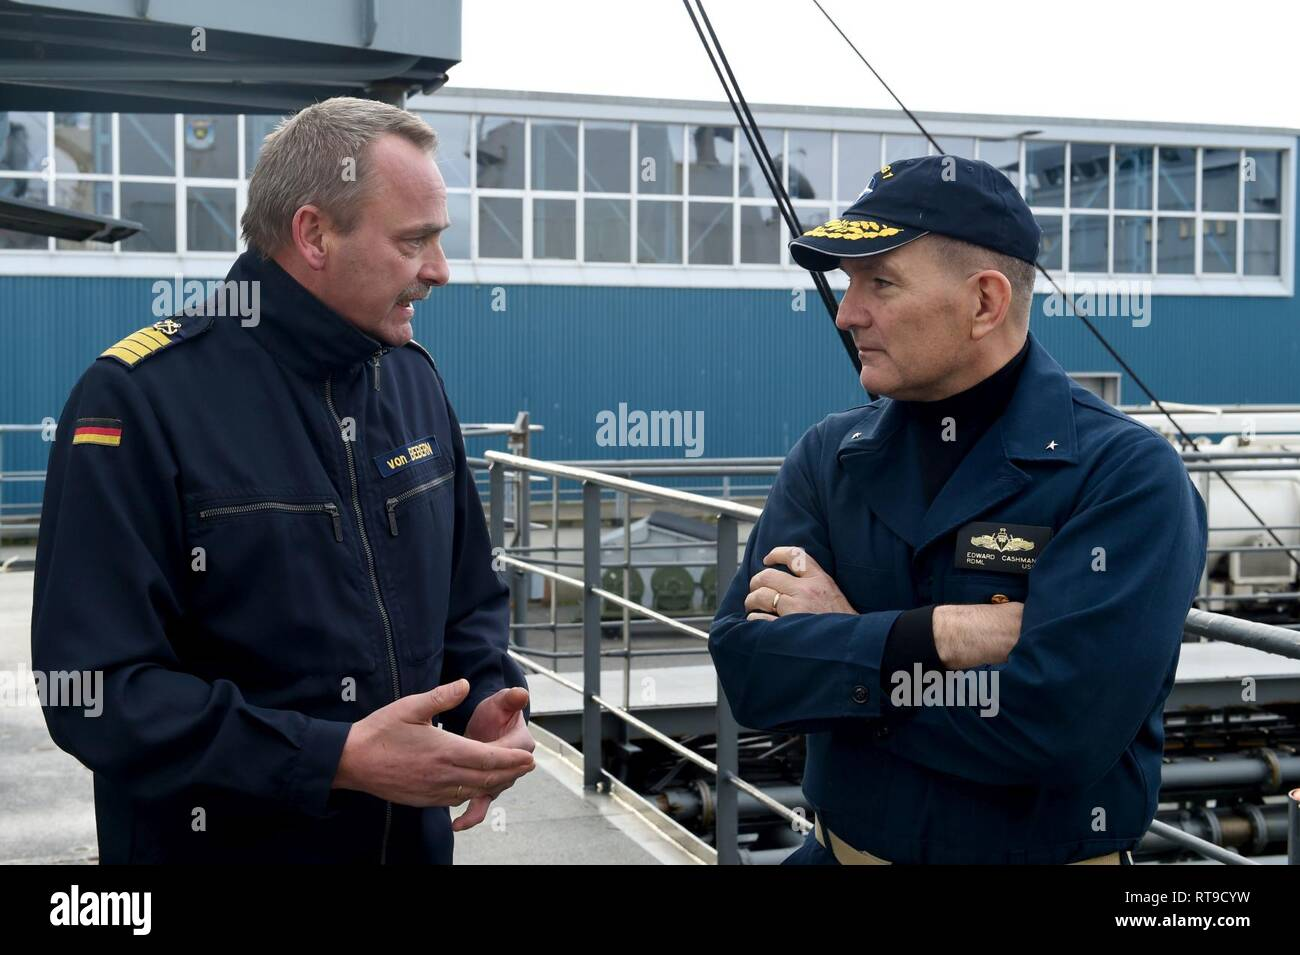 Fgs Security fgs spessart stock photos & fgs spessart stock images - alamy